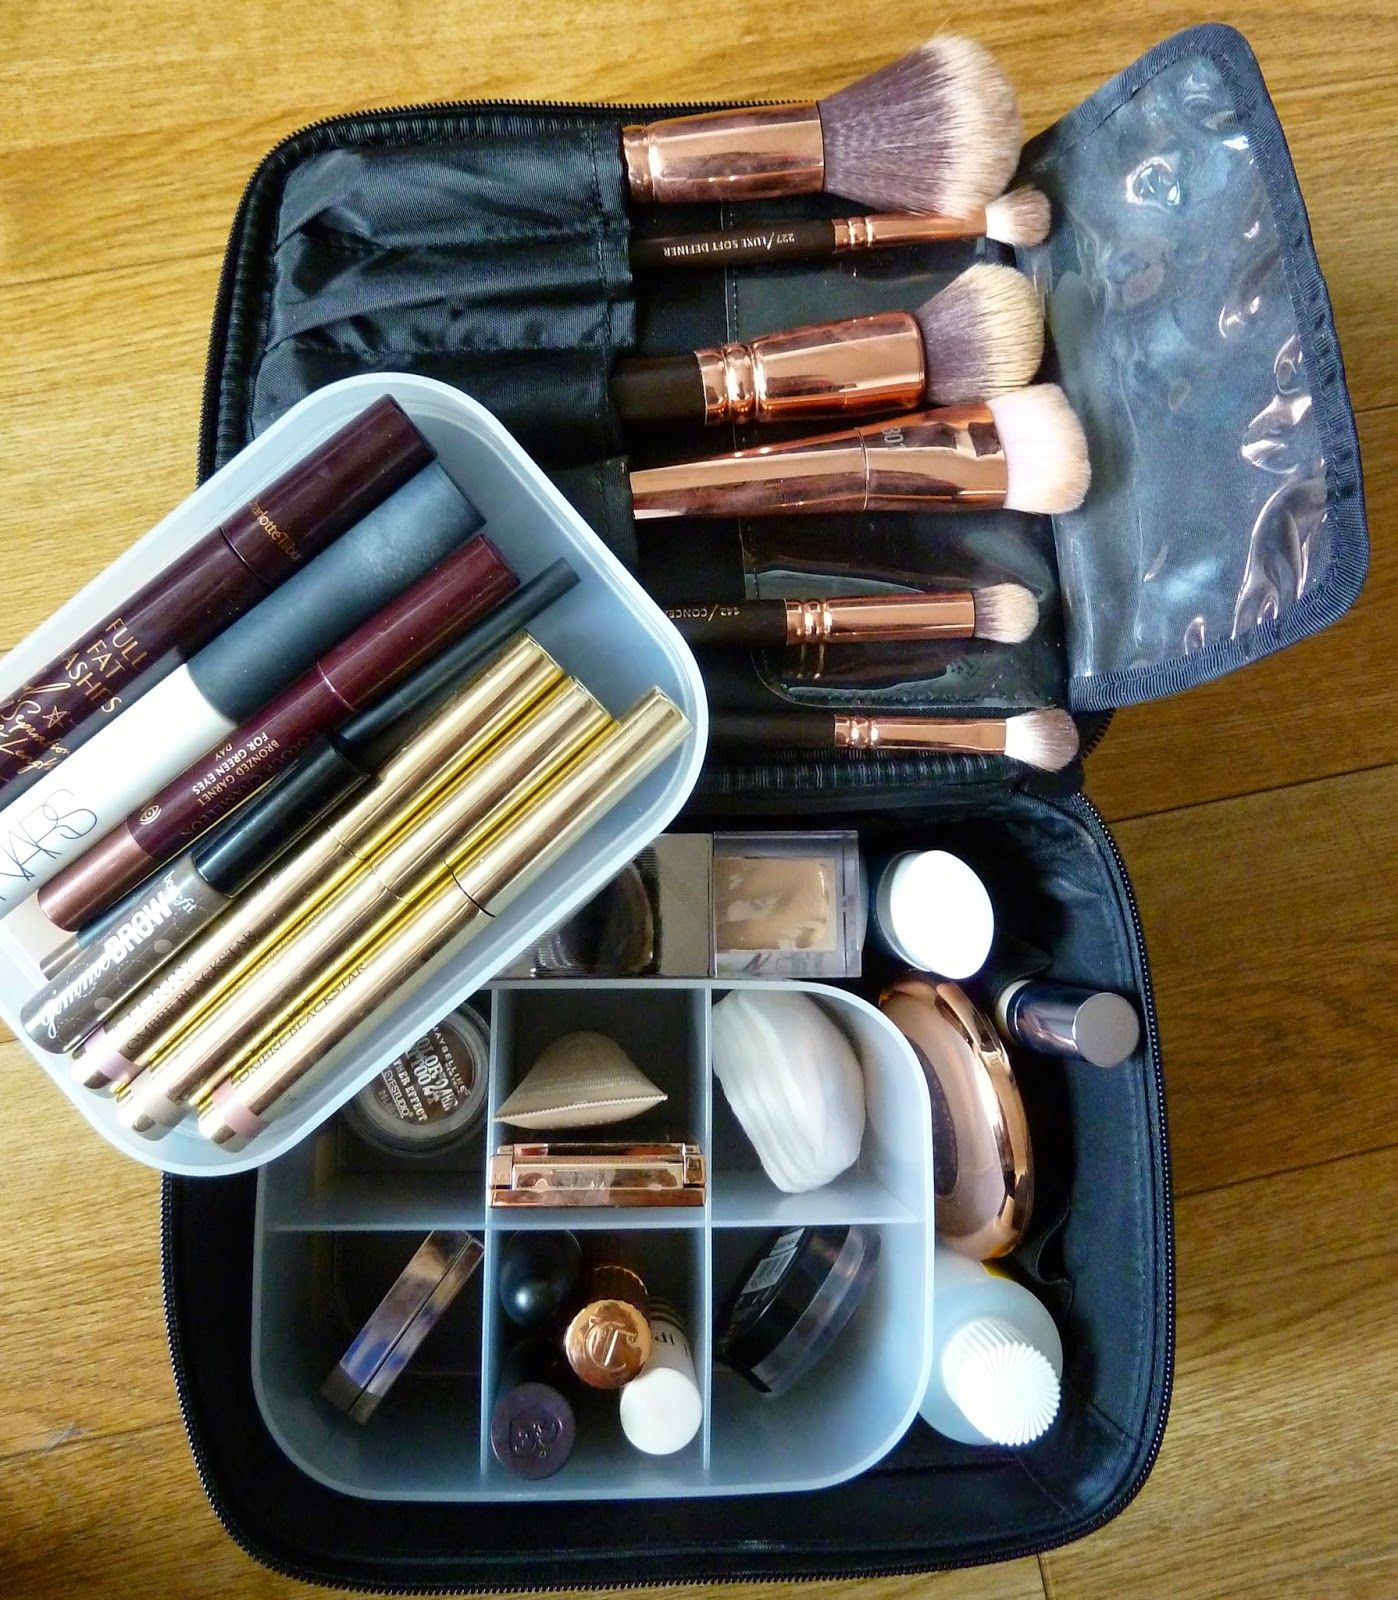 My travel makeup bag The Muji Vanity make up box Makeup